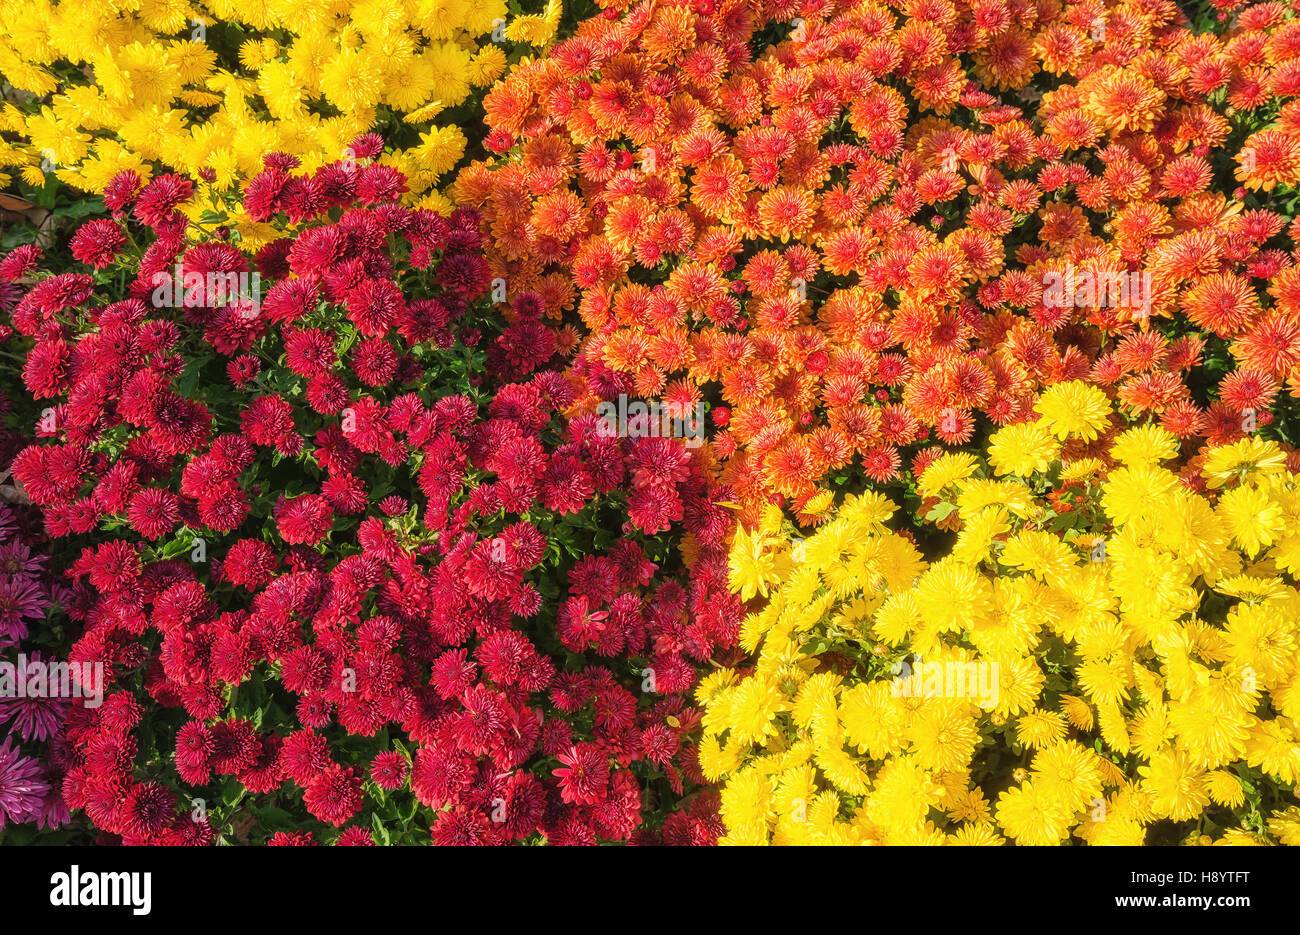 Colorful Autumn Mums or Chrysanthemum flowers - Stock Image